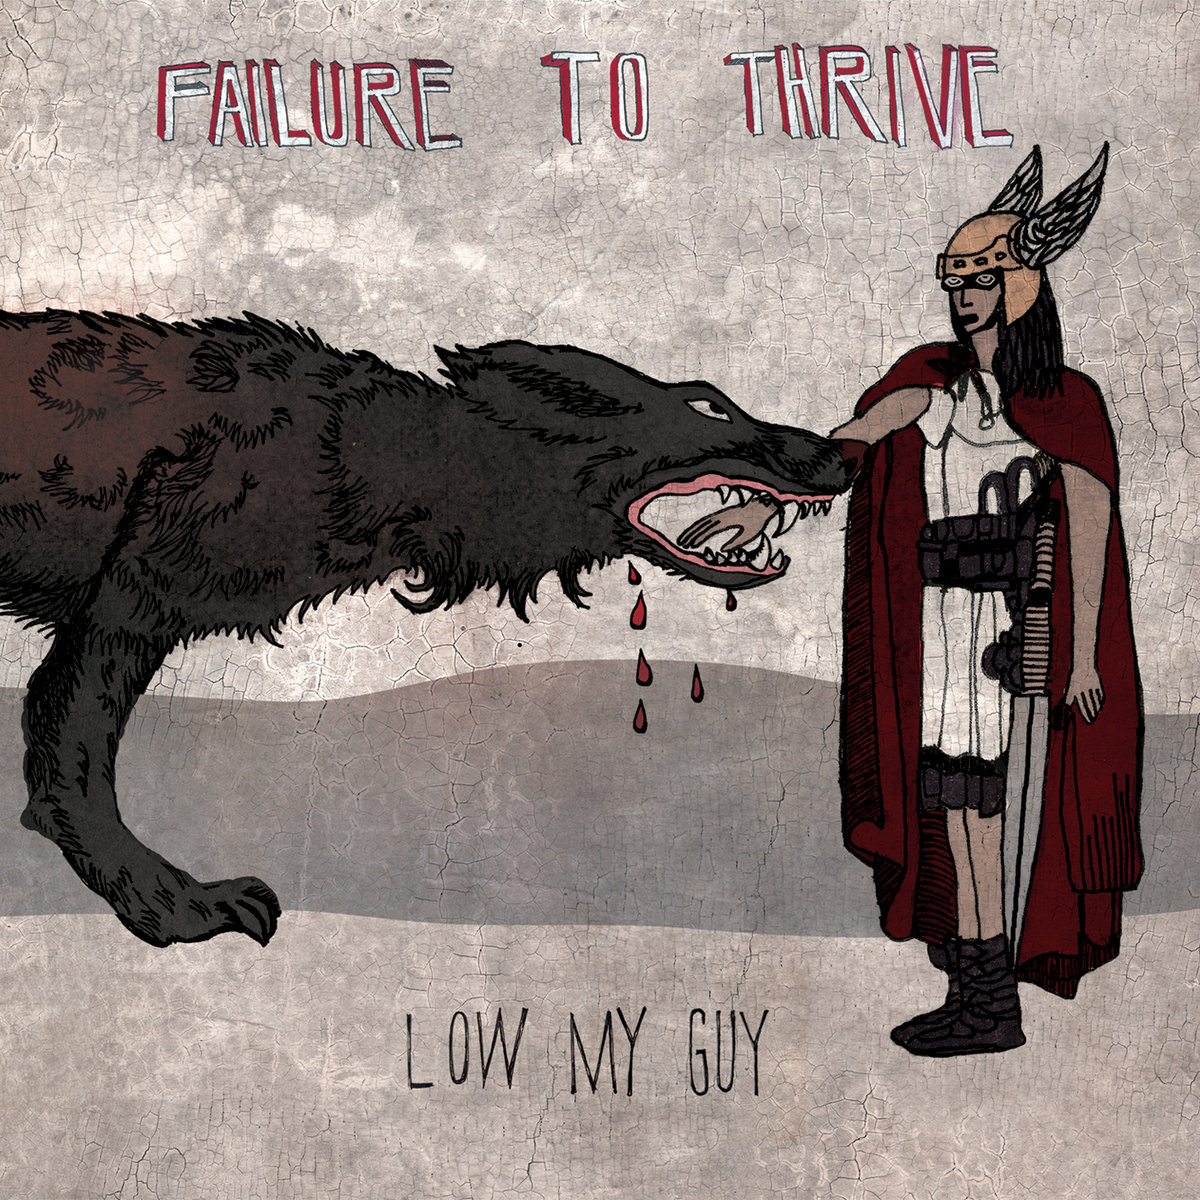 Failure to Thrive by Low My Guy